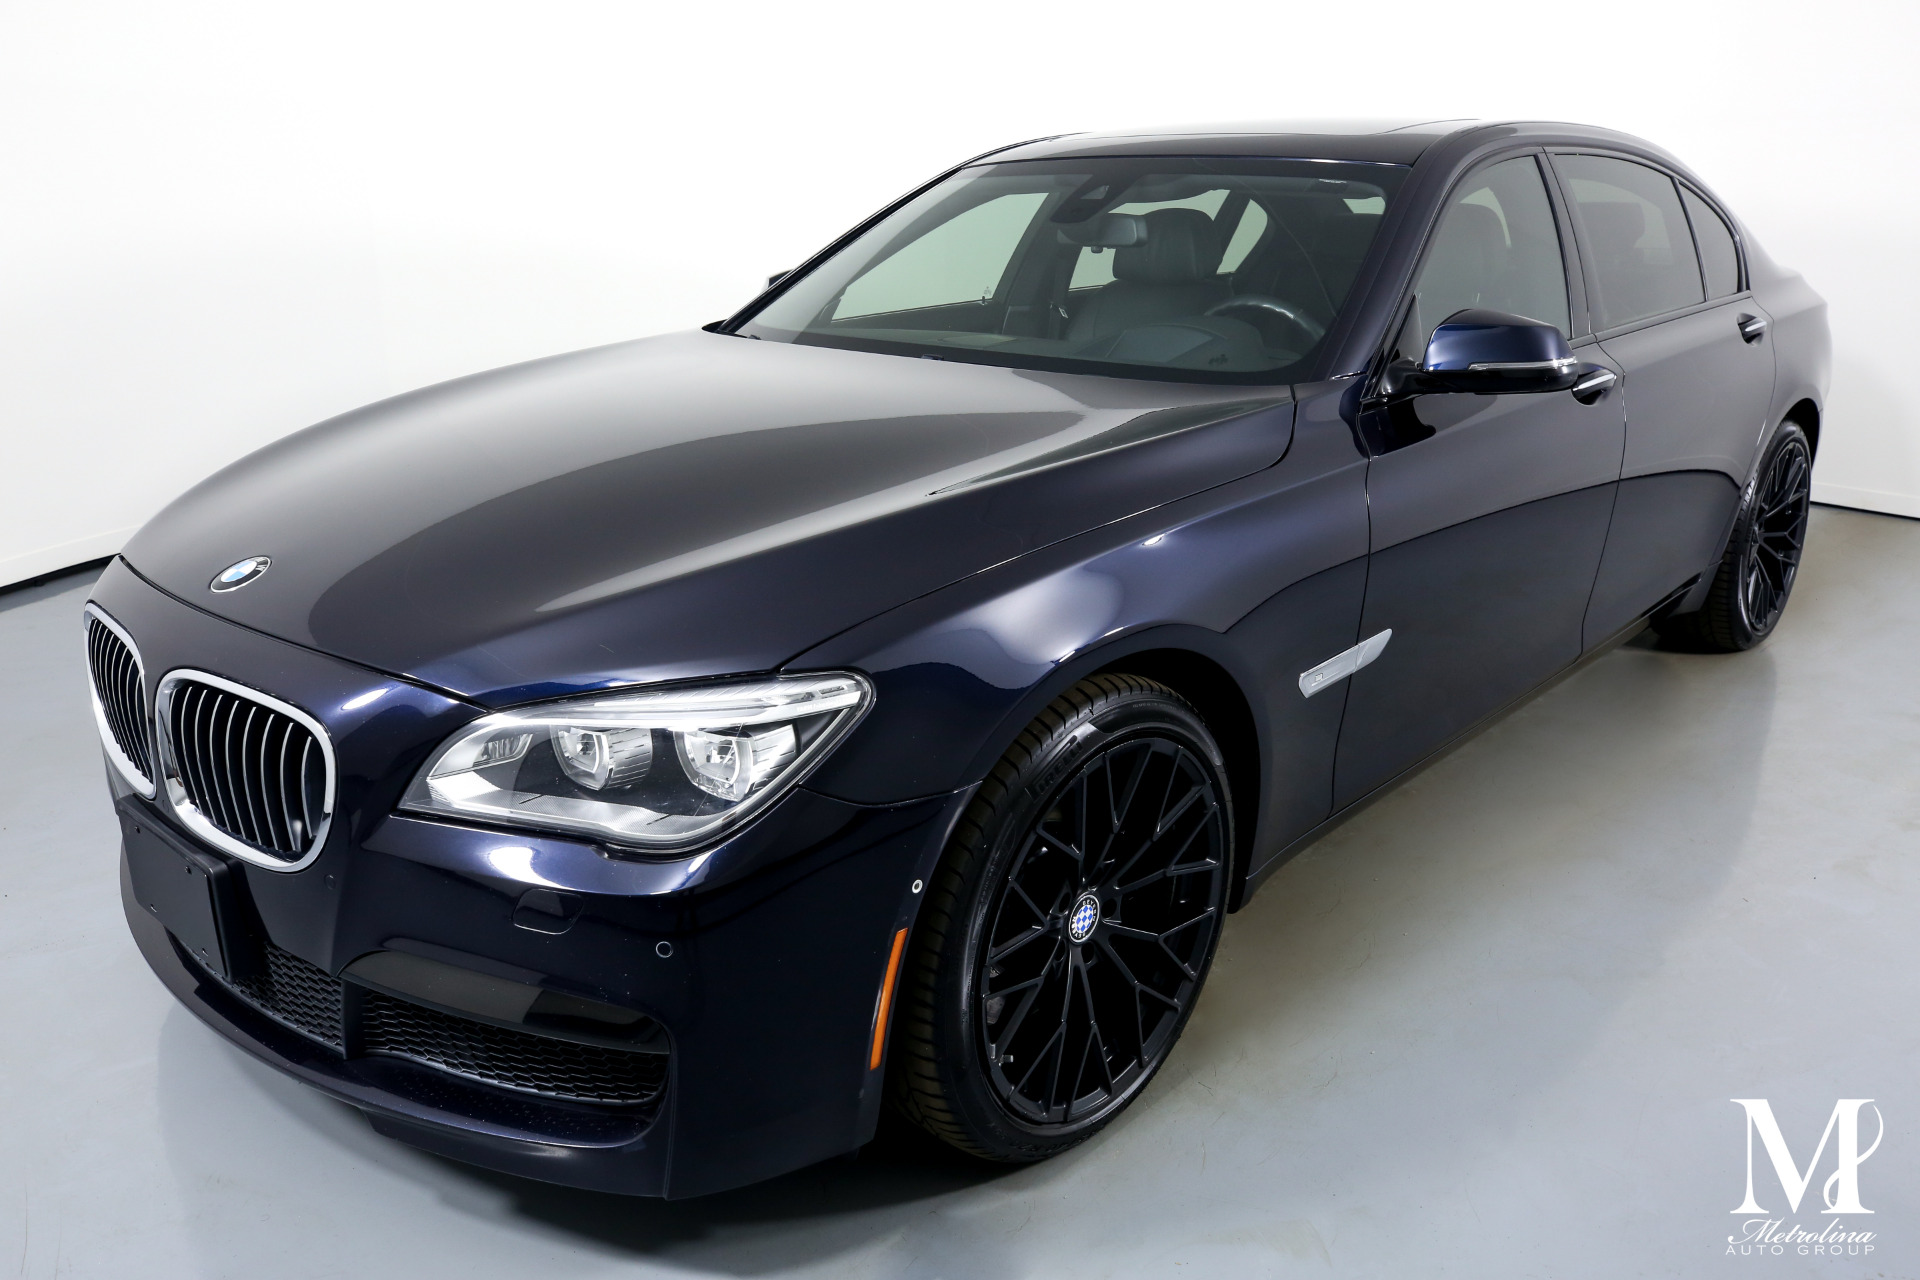 Used 2013 BMW 7 Series 750Li for sale Sold at Metrolina Auto Group in Charlotte NC 28217 - 4